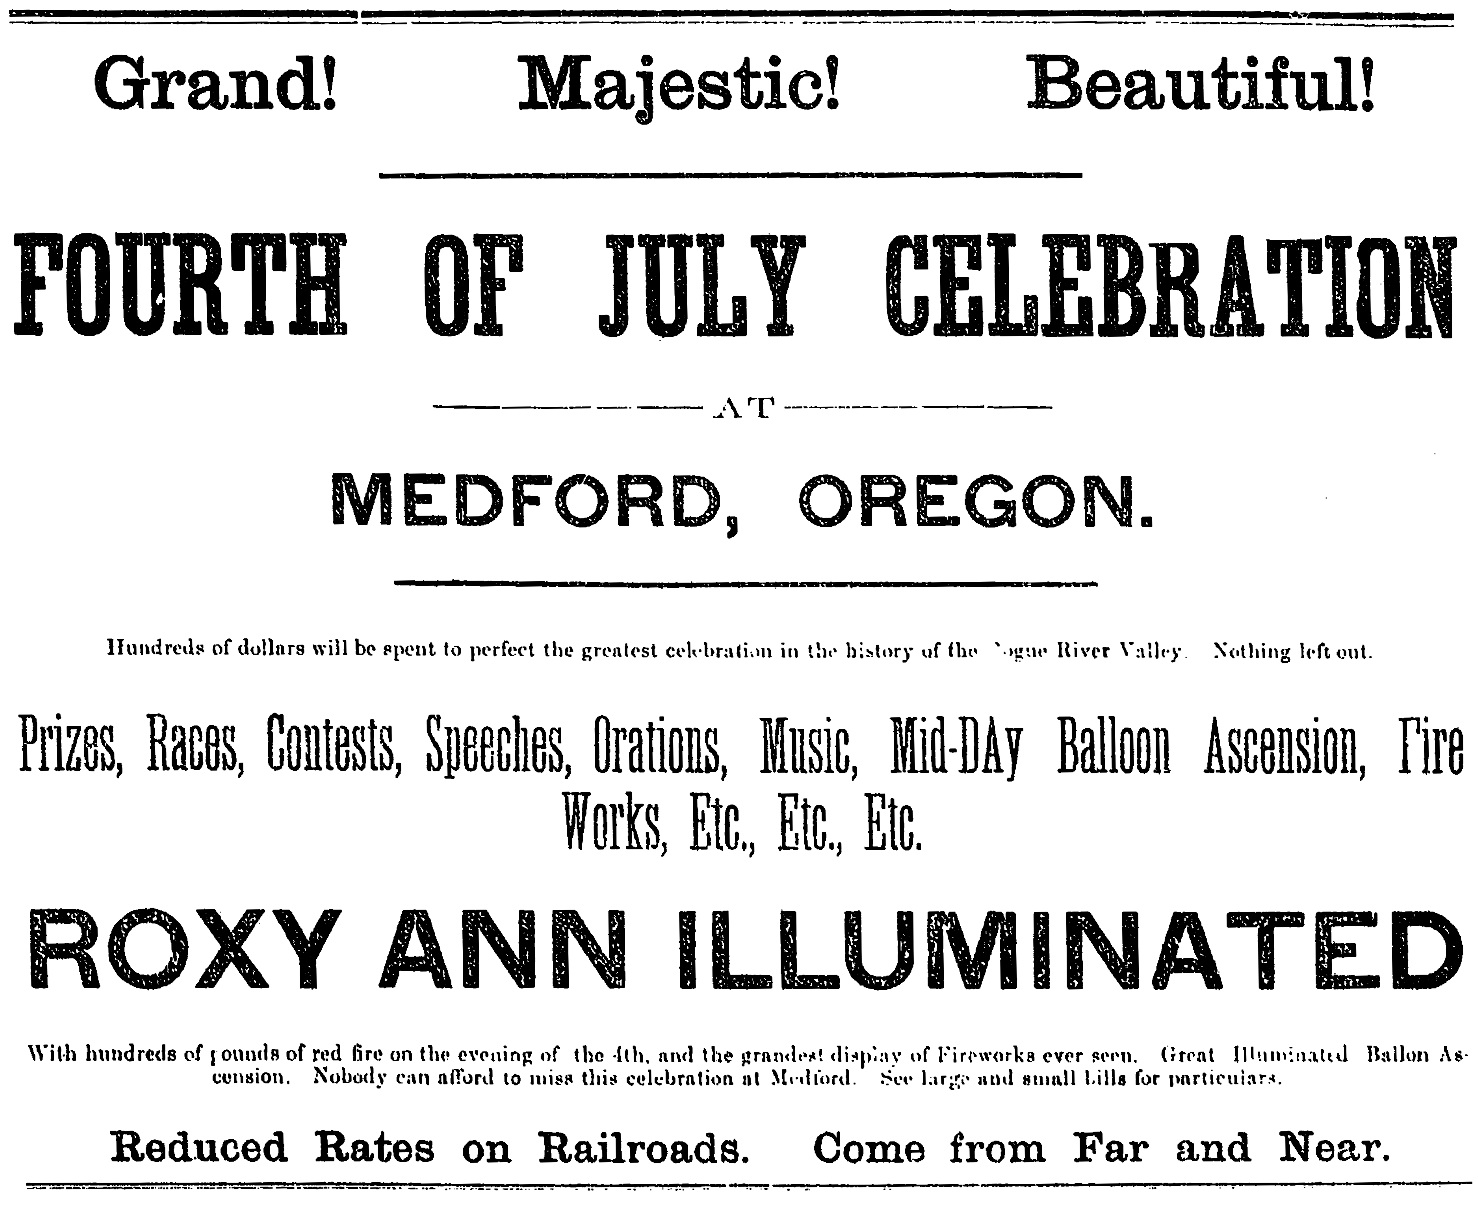 Fourth of July ad, June 24, 1892 Southern Oregon Mail